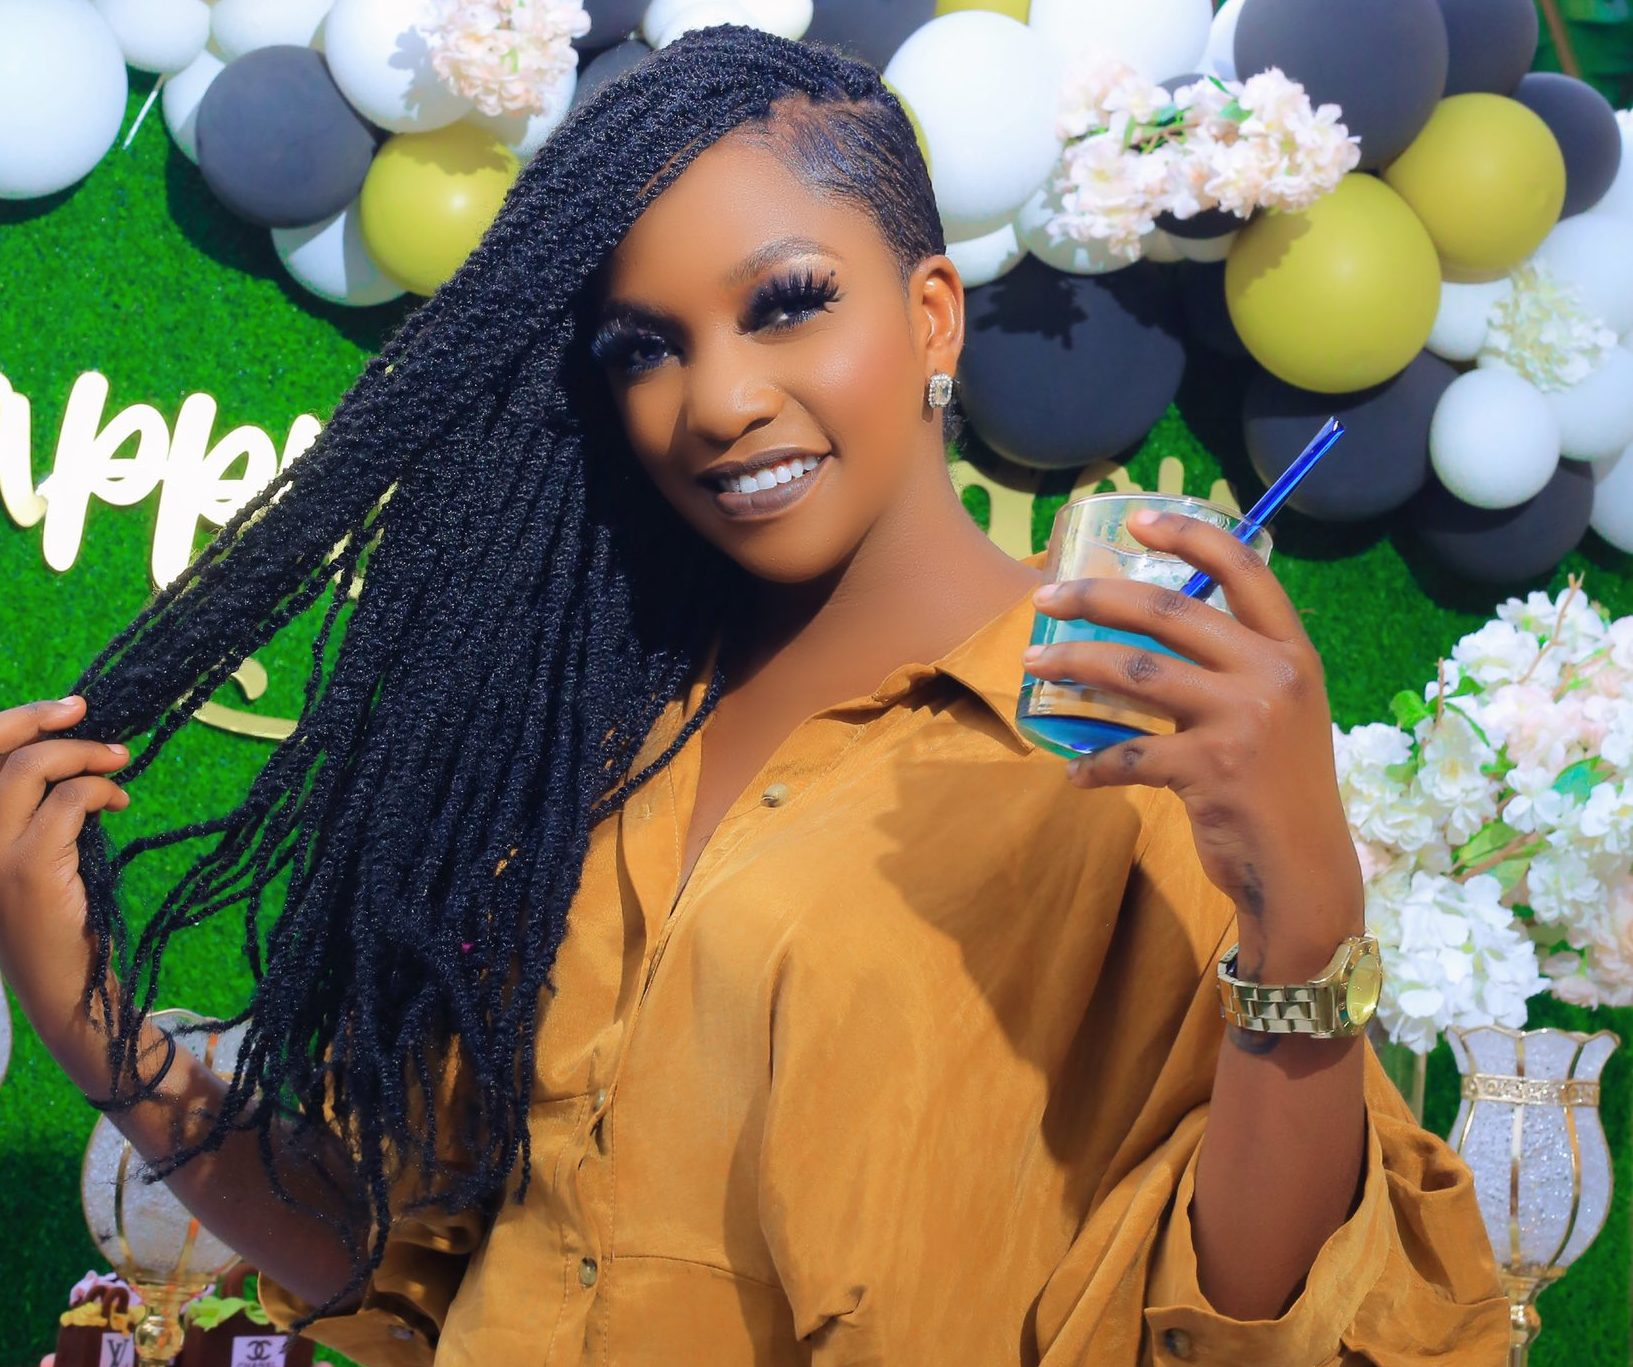 Ntale proves she doesn't bleach or wear fake bums